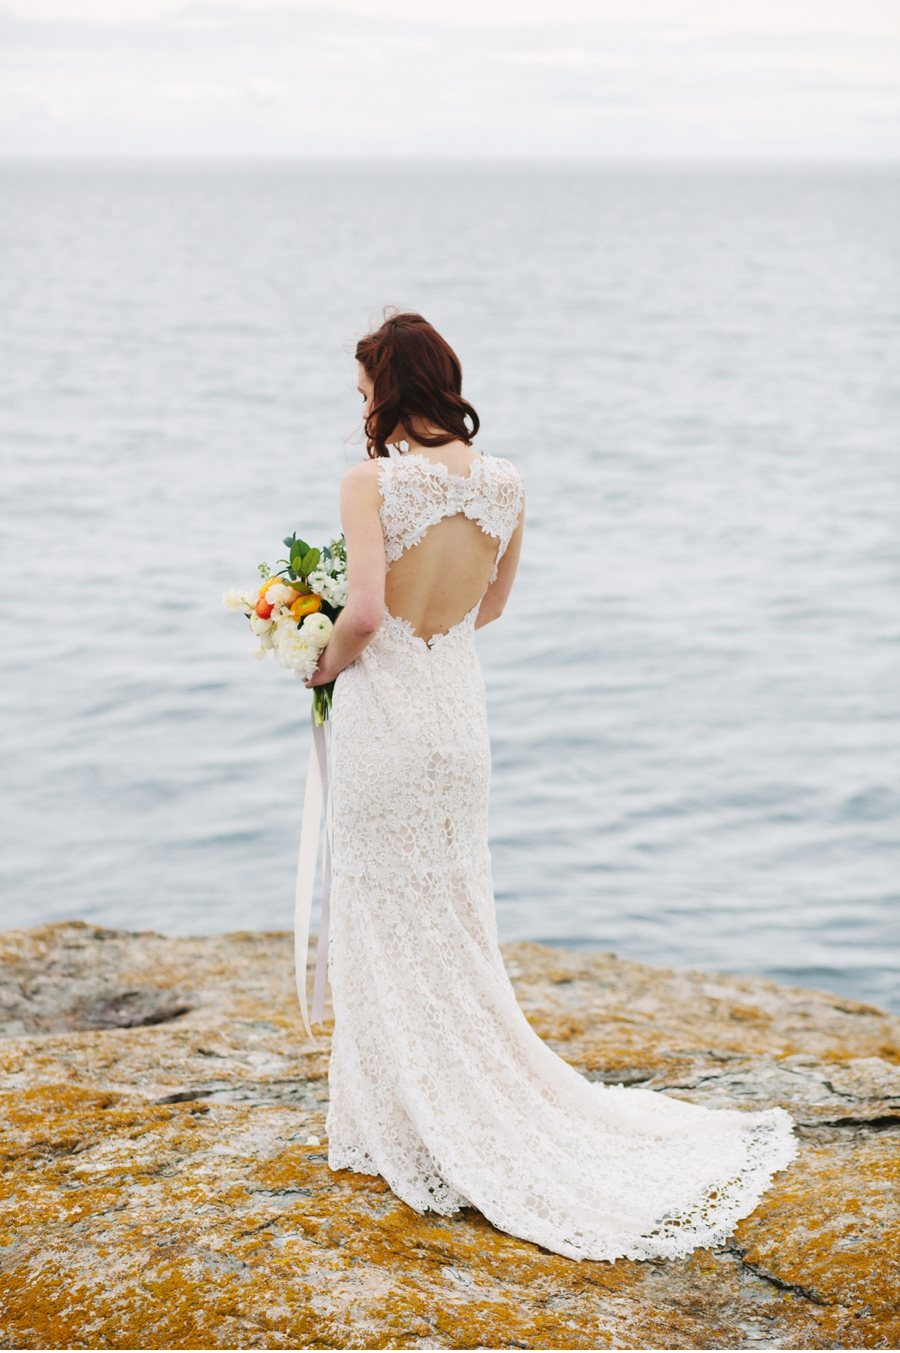 West-Coast-Redhead-Bride-with-Bouquet